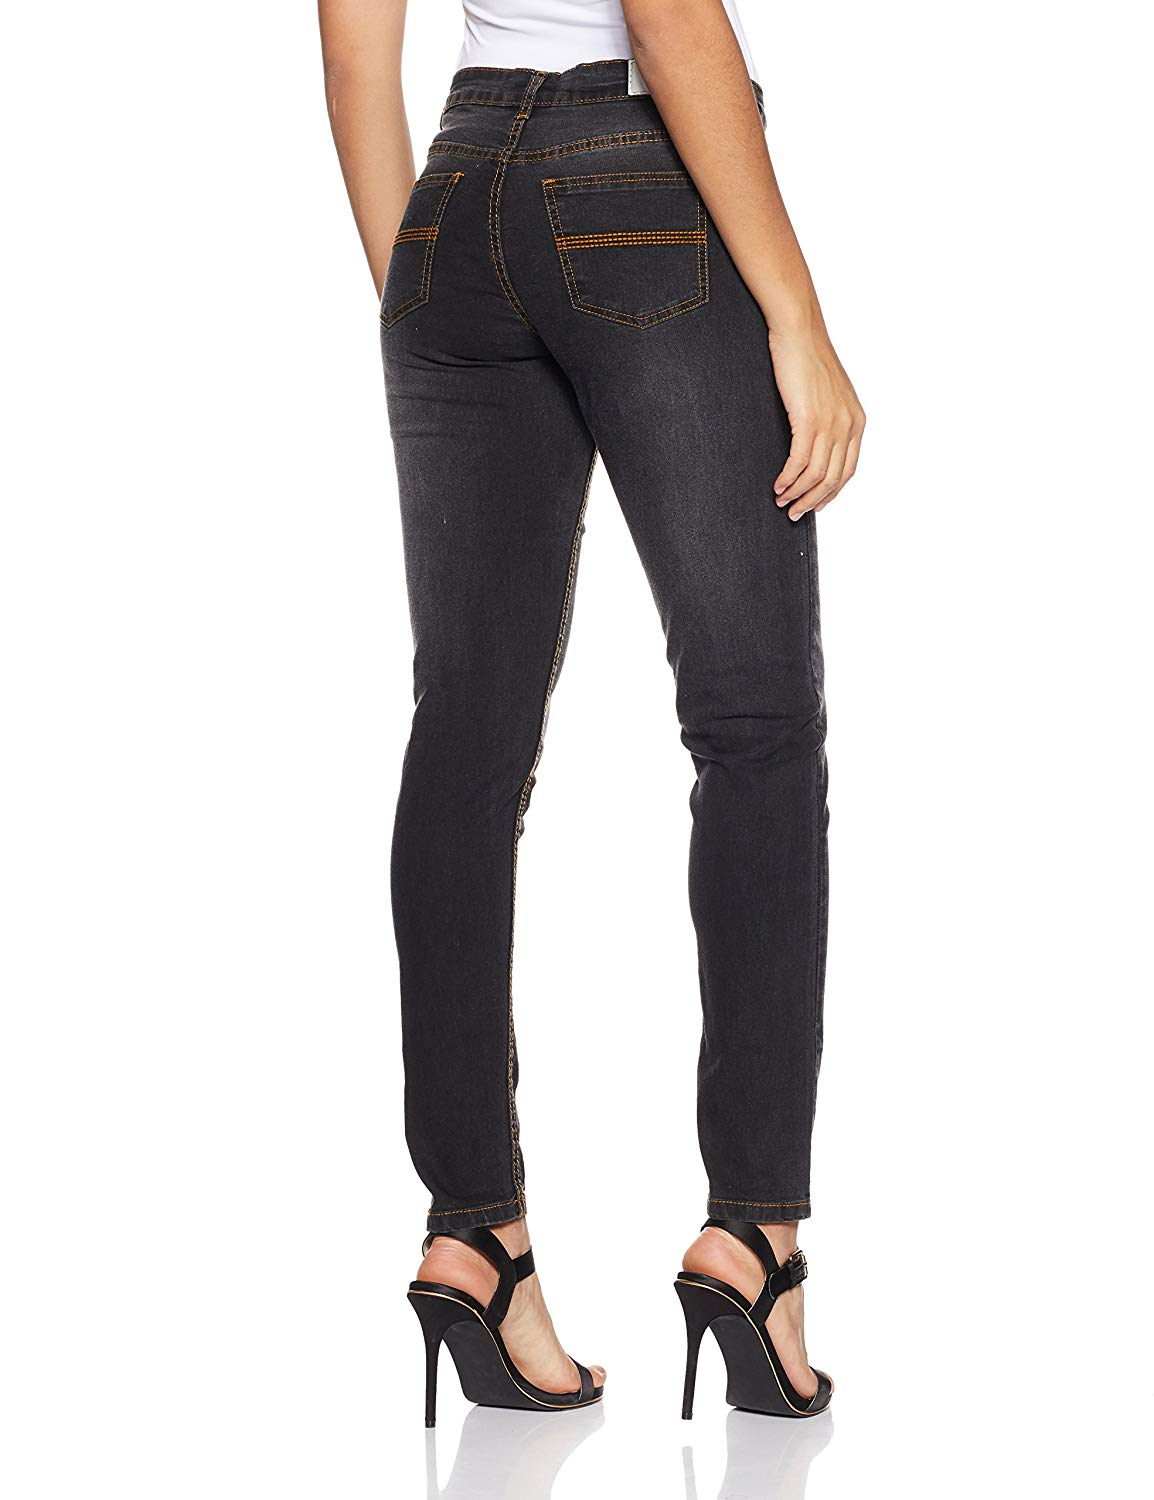 Aamzon - Women's Jeans Minimum 60% Discount Starting From Rs.277